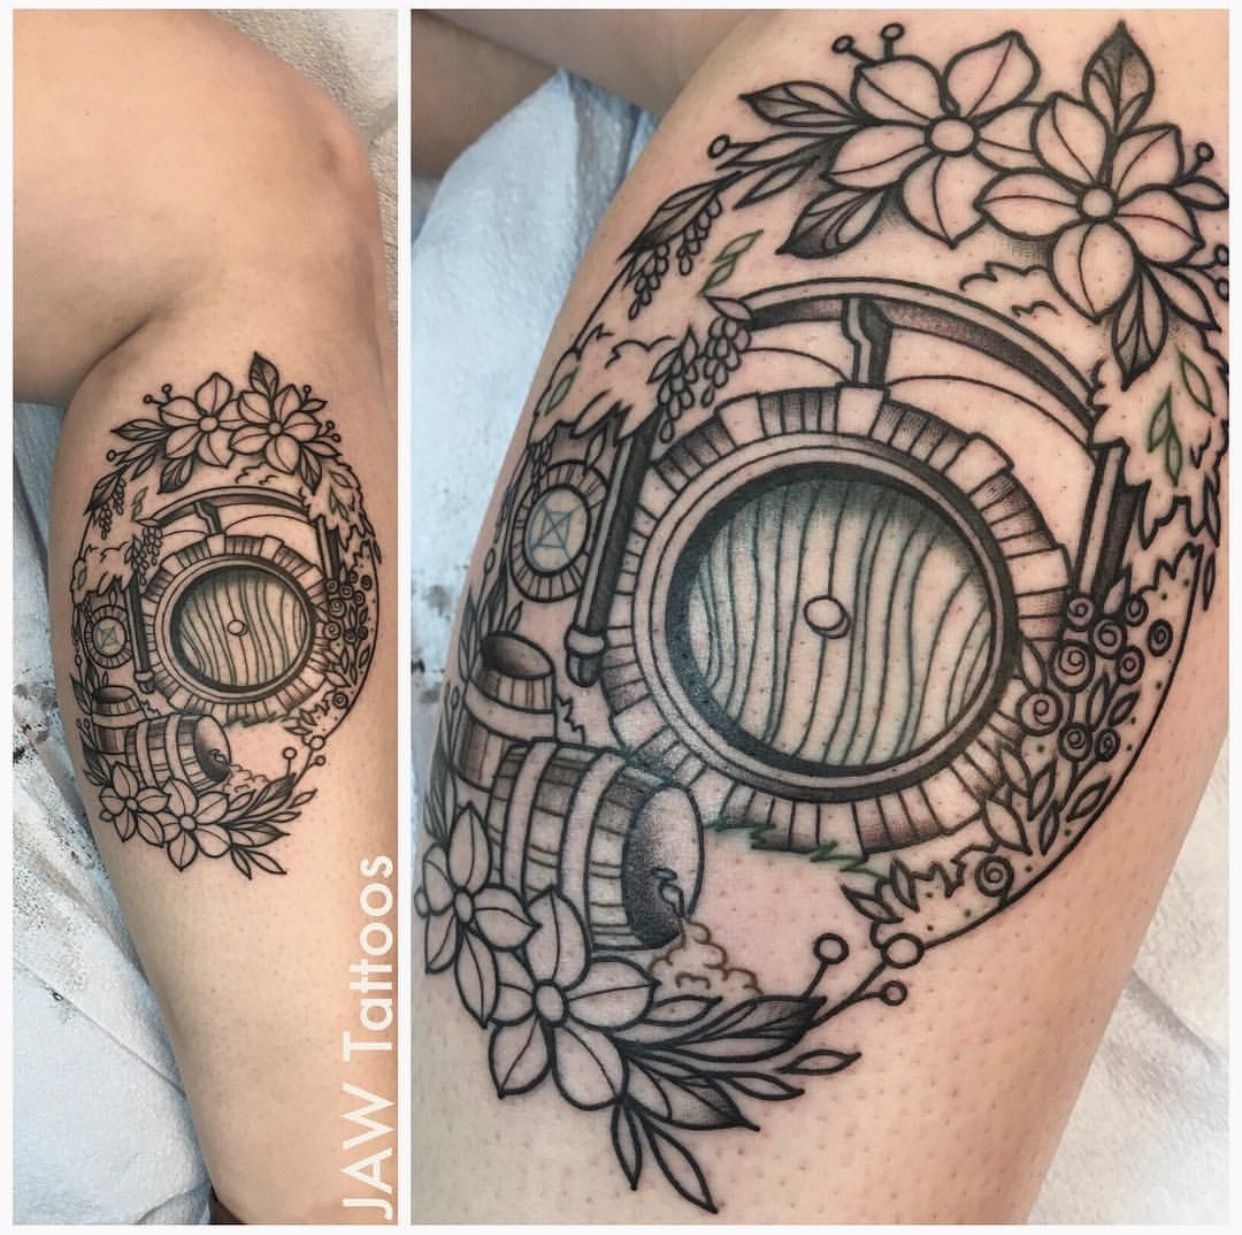 40d648576 Hobbit Hole Tattoo by Jessica White. Color next session. | Tattoo ...